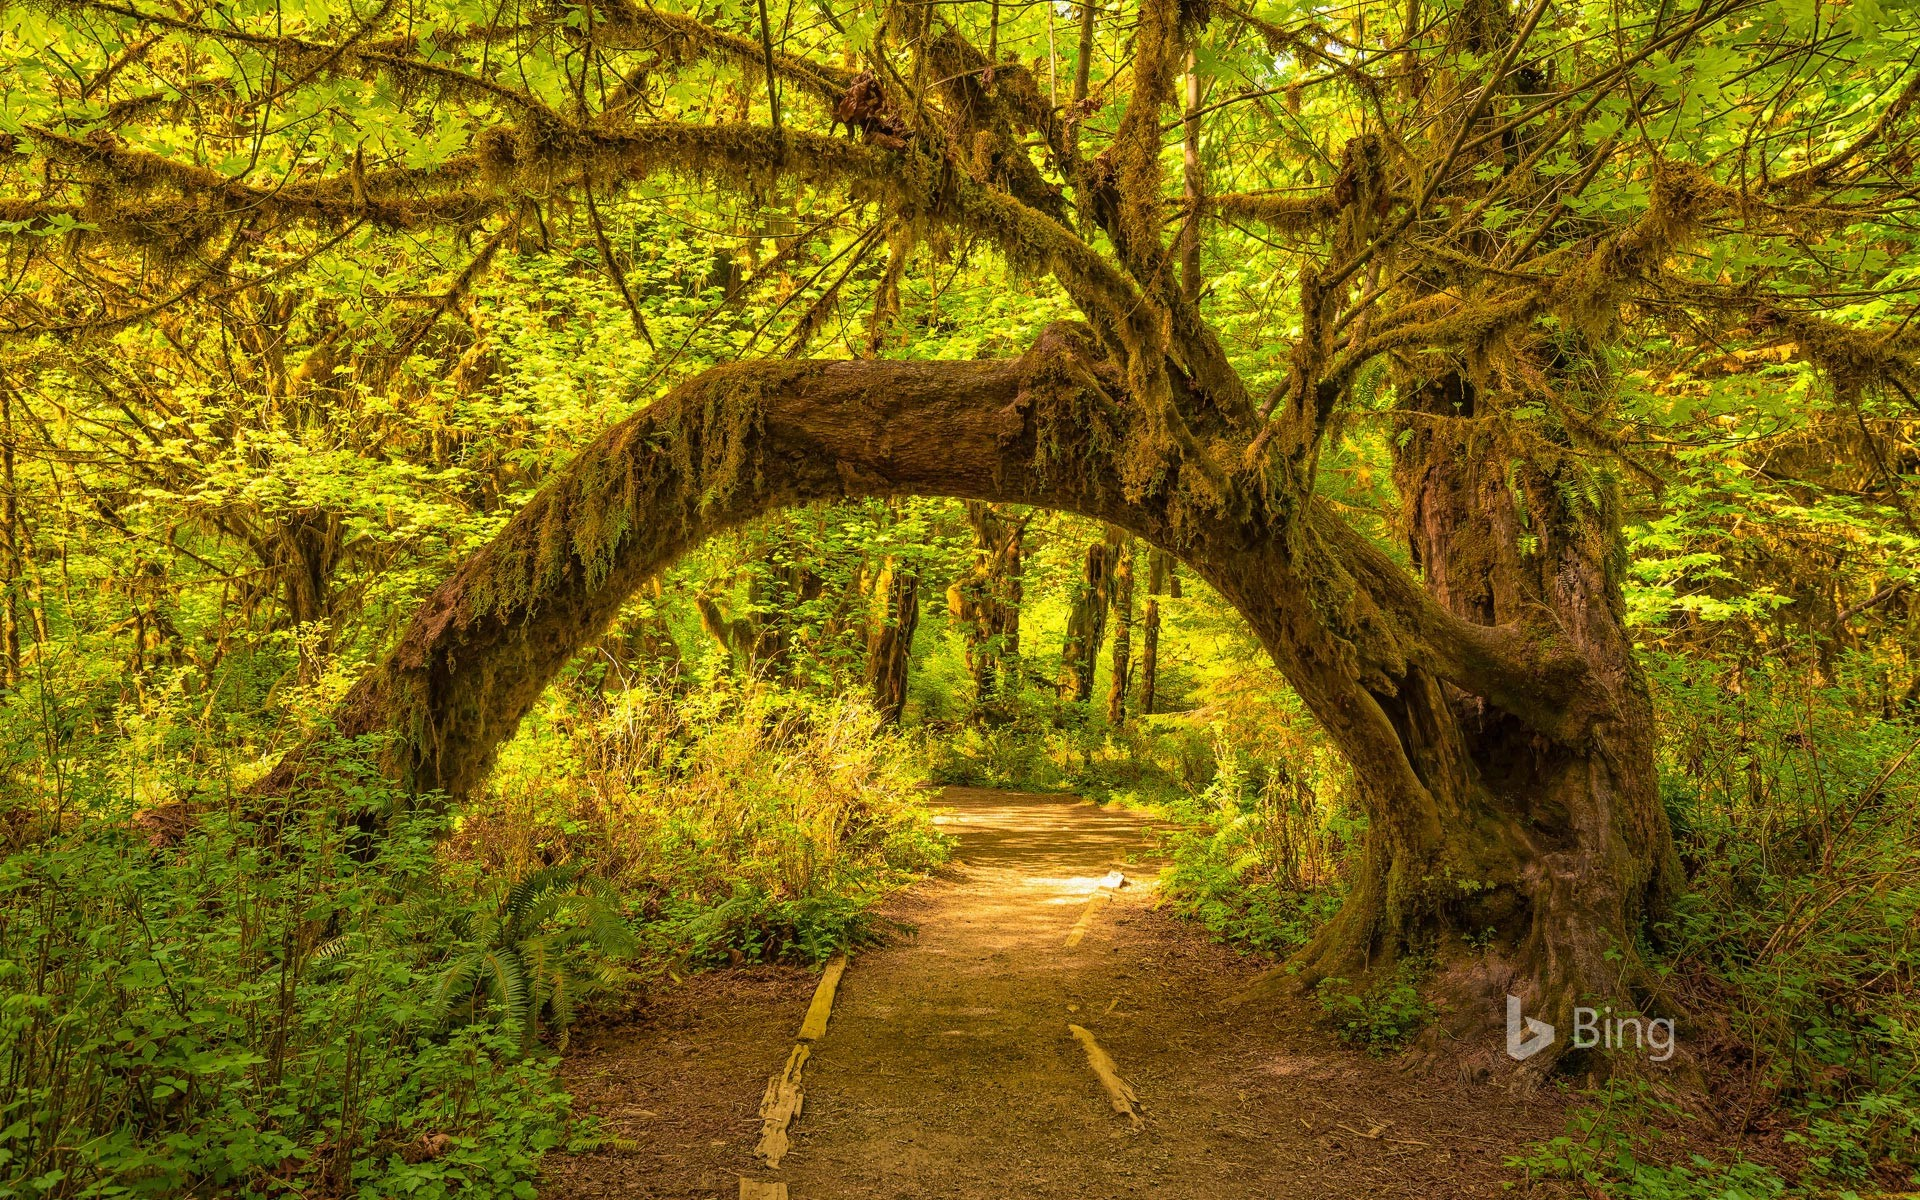 The Hoh Rainforest in Olympic National Park, Washington state